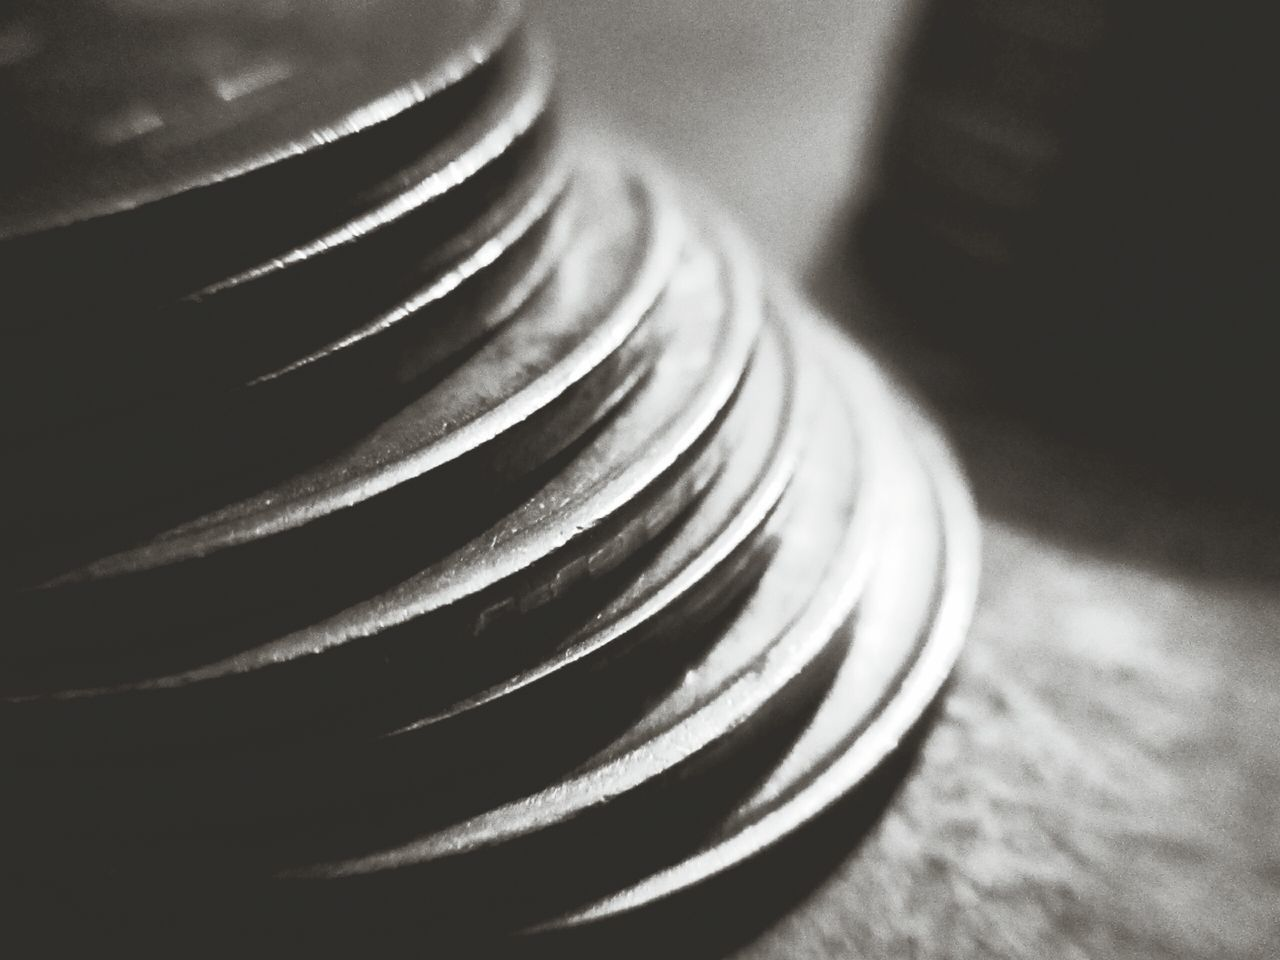 Pile Of Coins Coins Coins On The Table Coins ₹_₹ @sekharchinta, HyderabadIndia